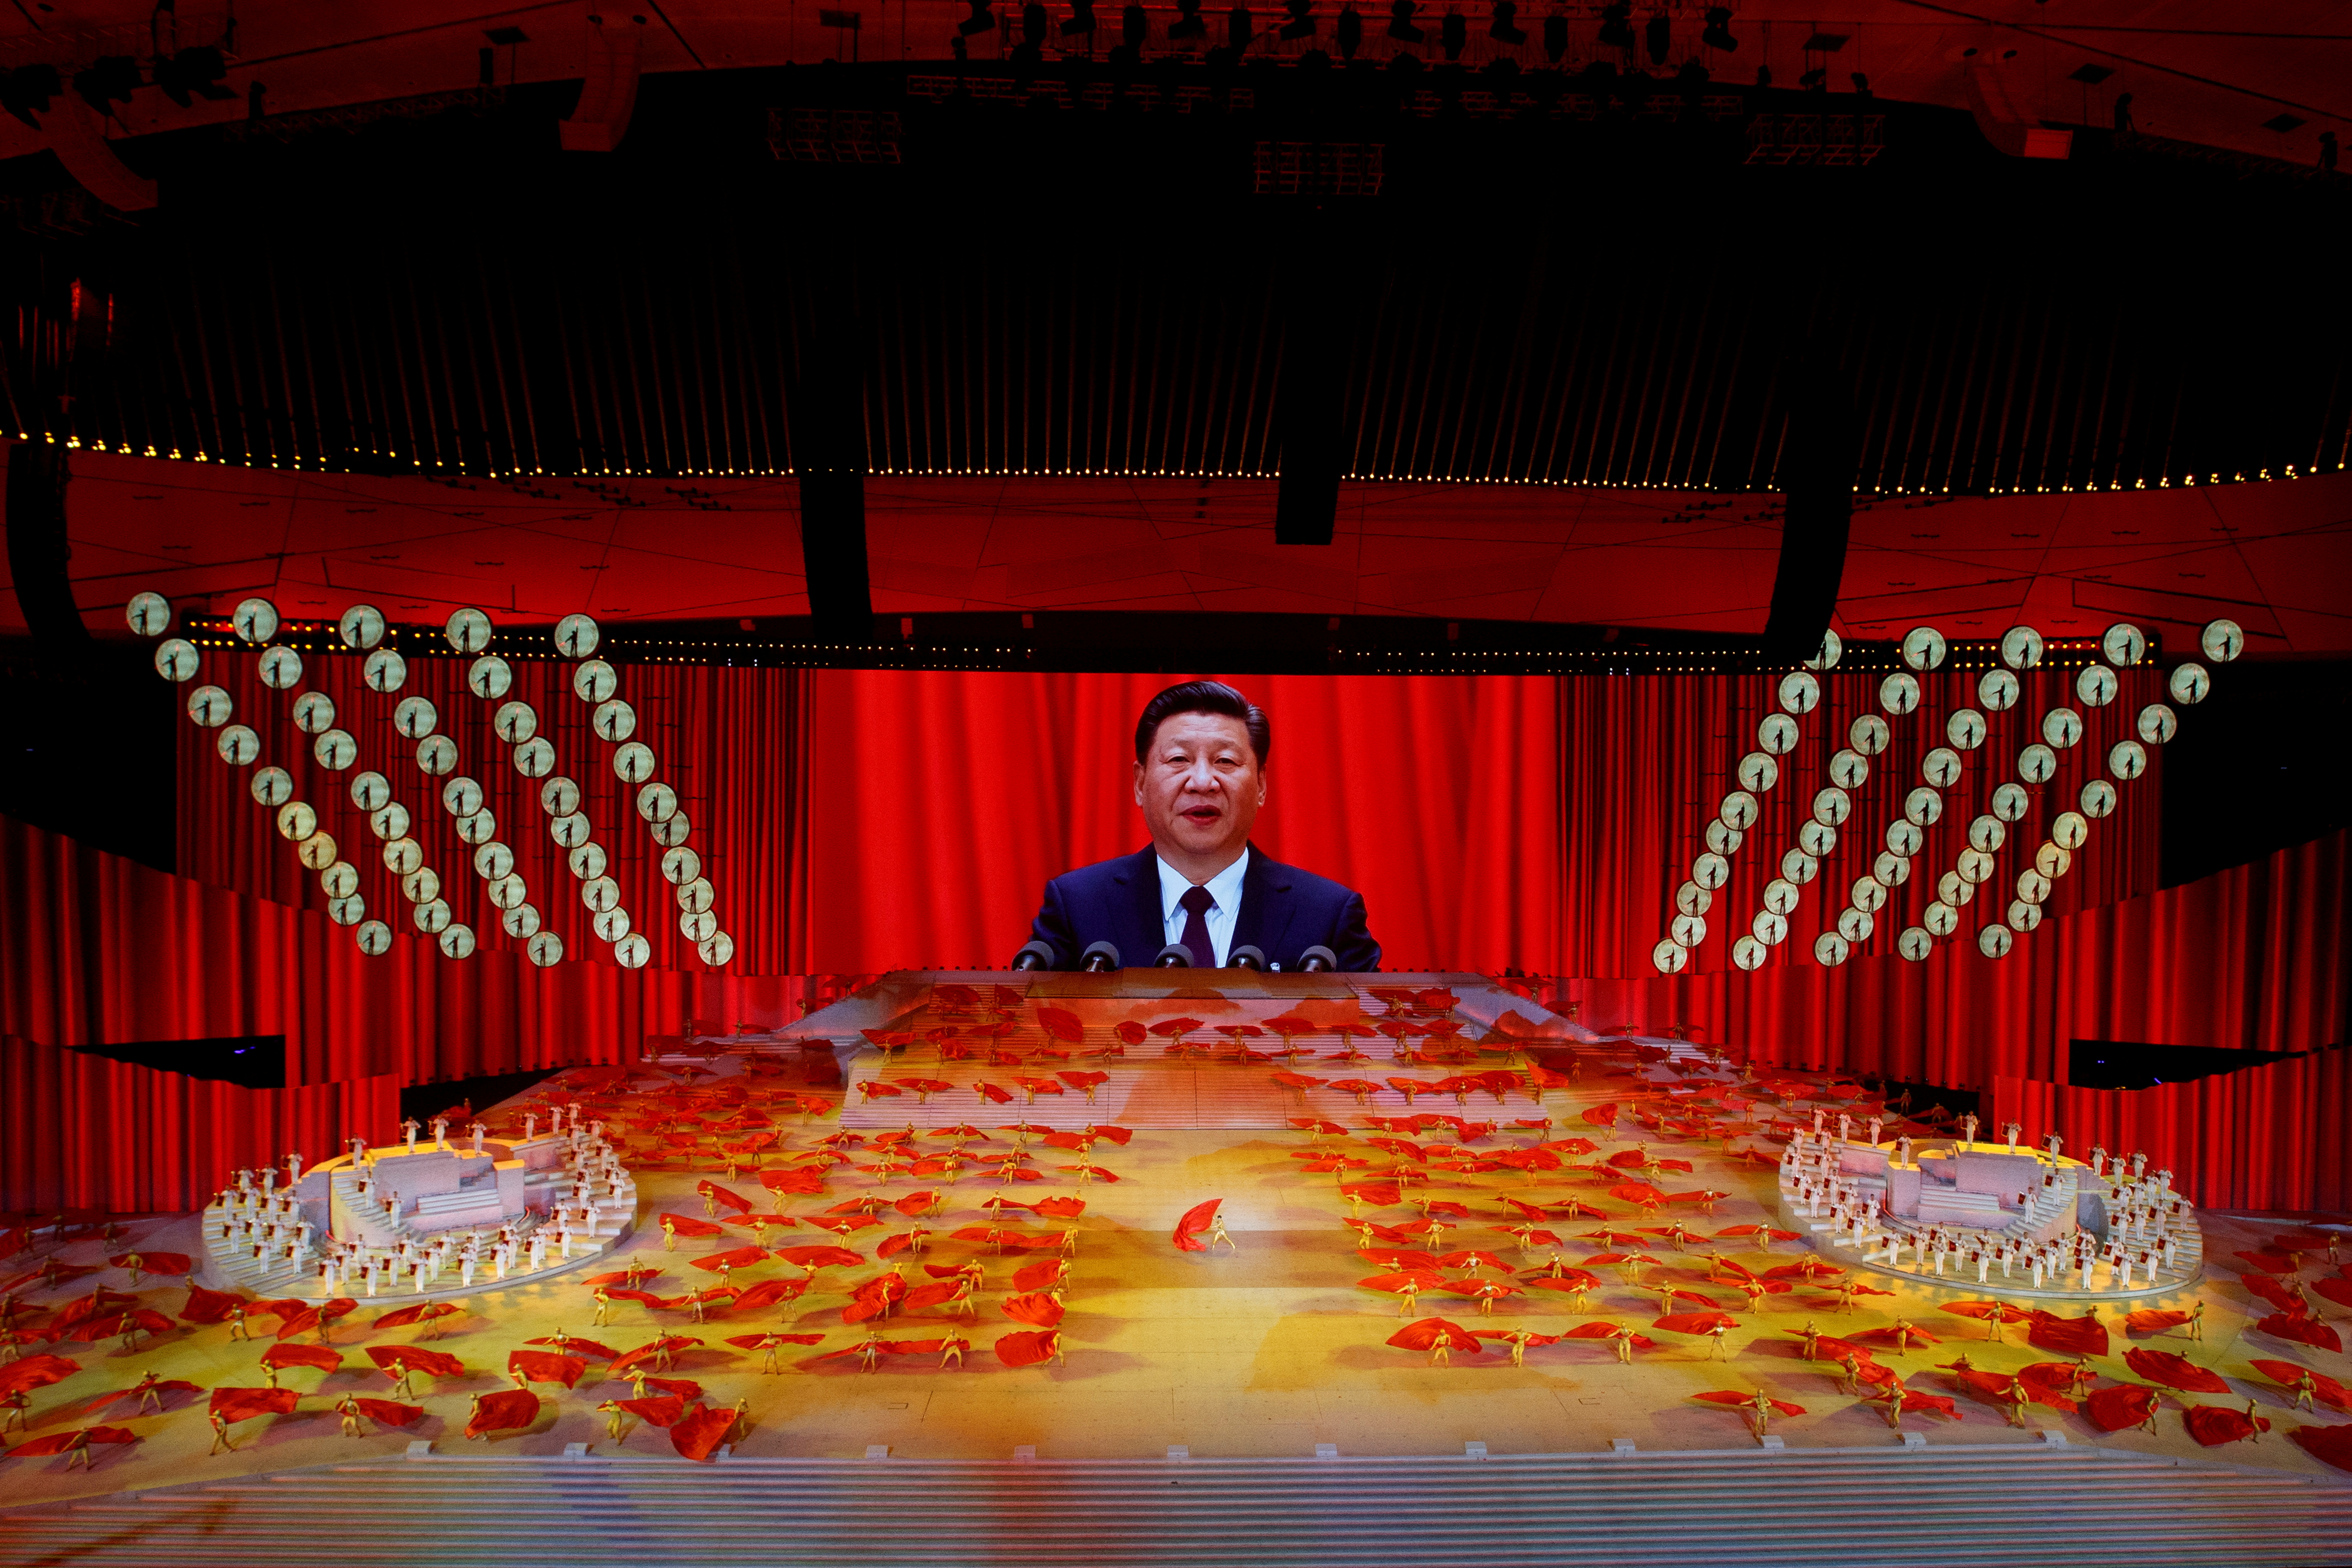 A screen shows Chinese President Xi Jinping during a show commemorating the 100th anniversary of the founding of the Communist Party of China at the National Stadium in Beijing, China June 28, 2021. REUTERS/Thomas Peter